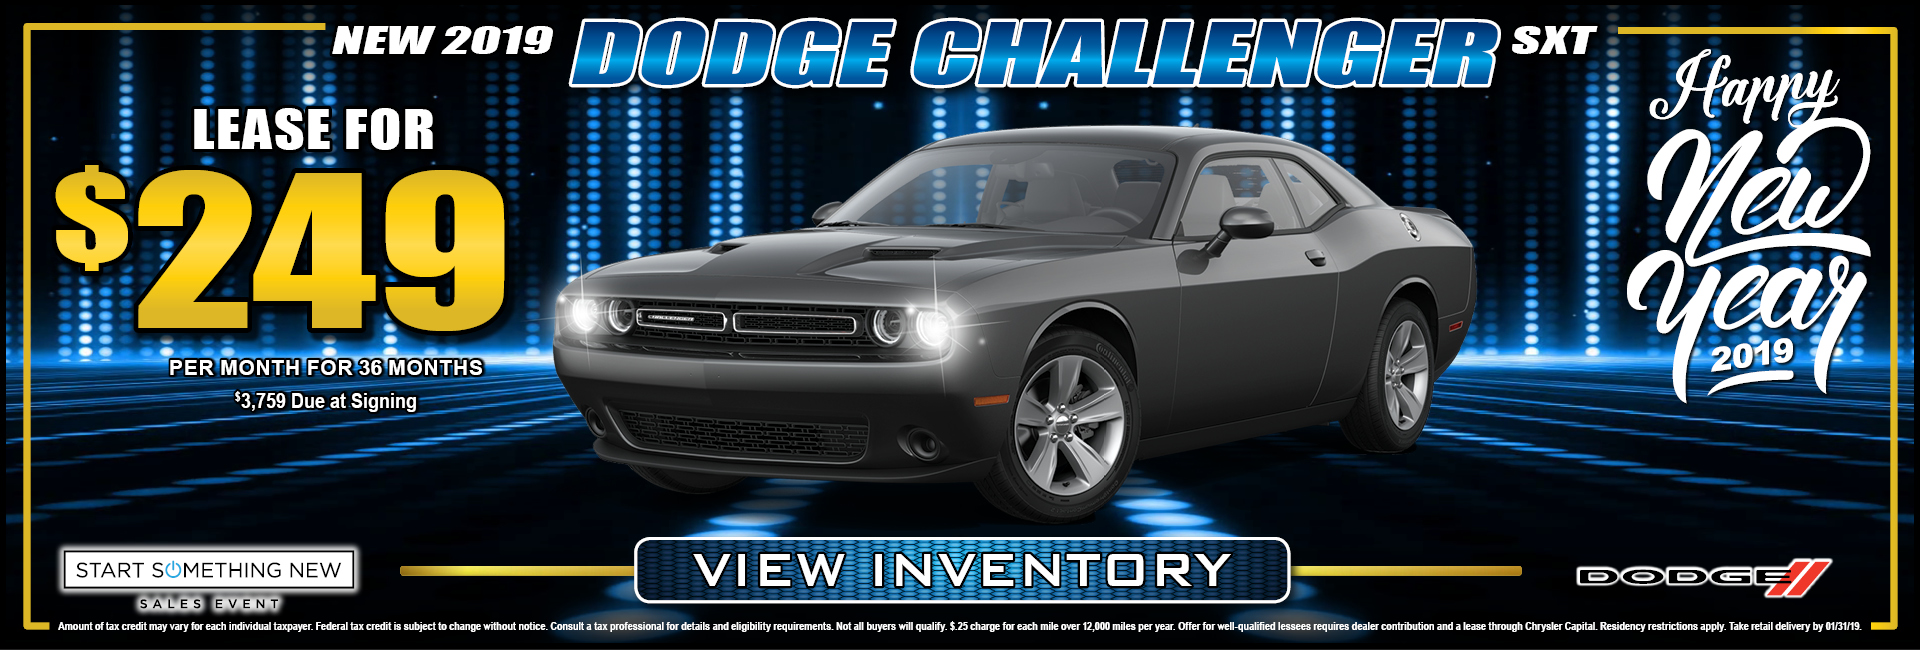 Dodge Challenger $249 Lease